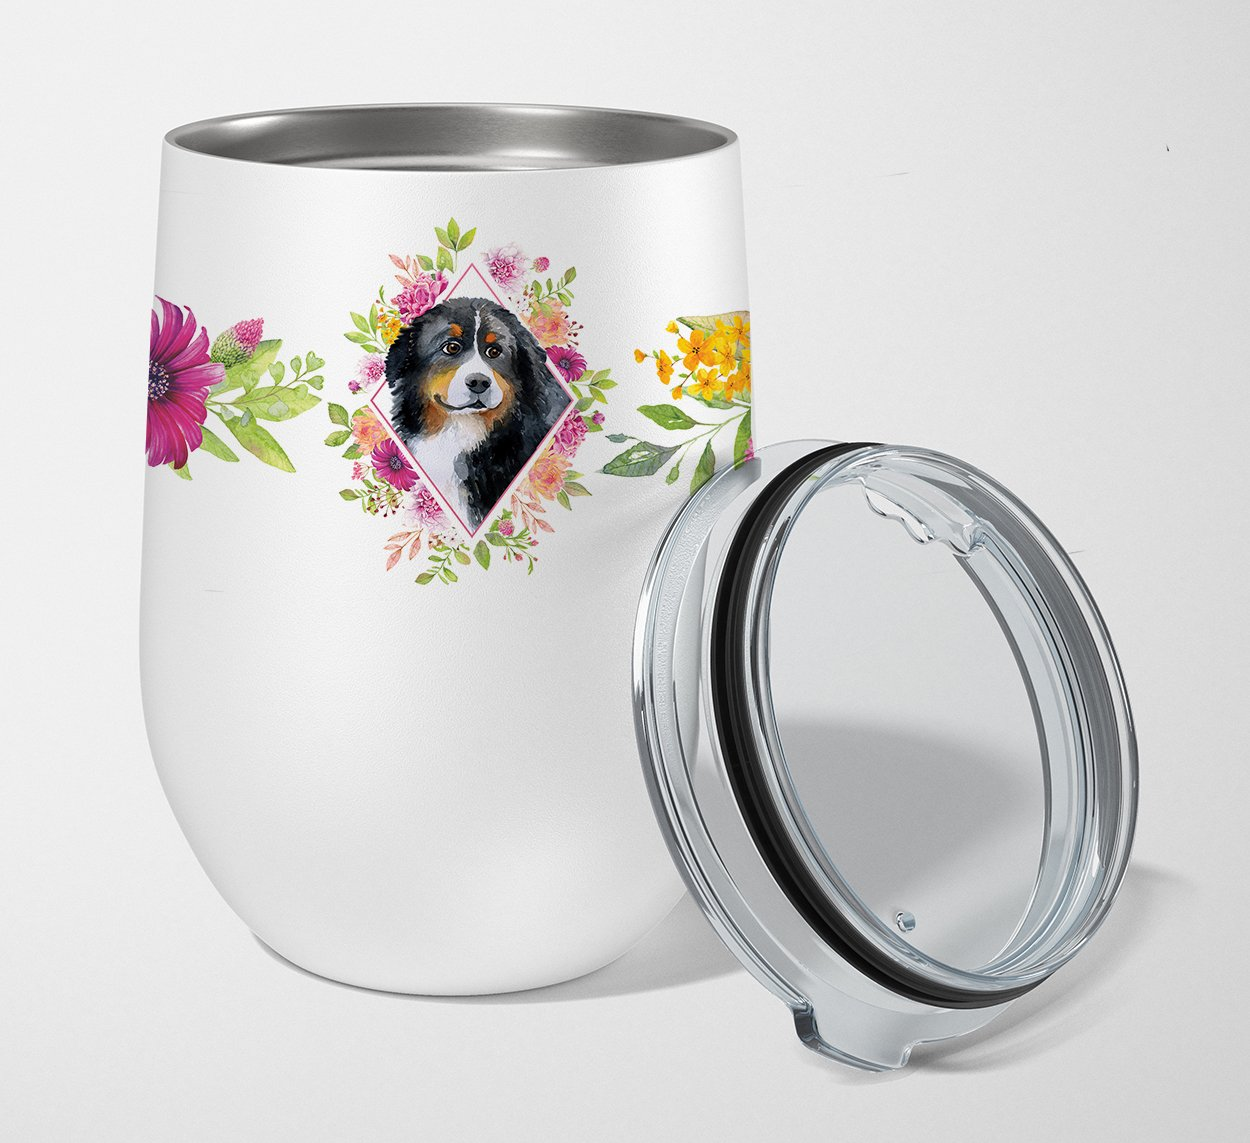 Bernese Mountain Dog Pink Flowers Stainless Steel 12 oz Stemless Wine Glass CK4118TBL12 by Caroline's Treasures